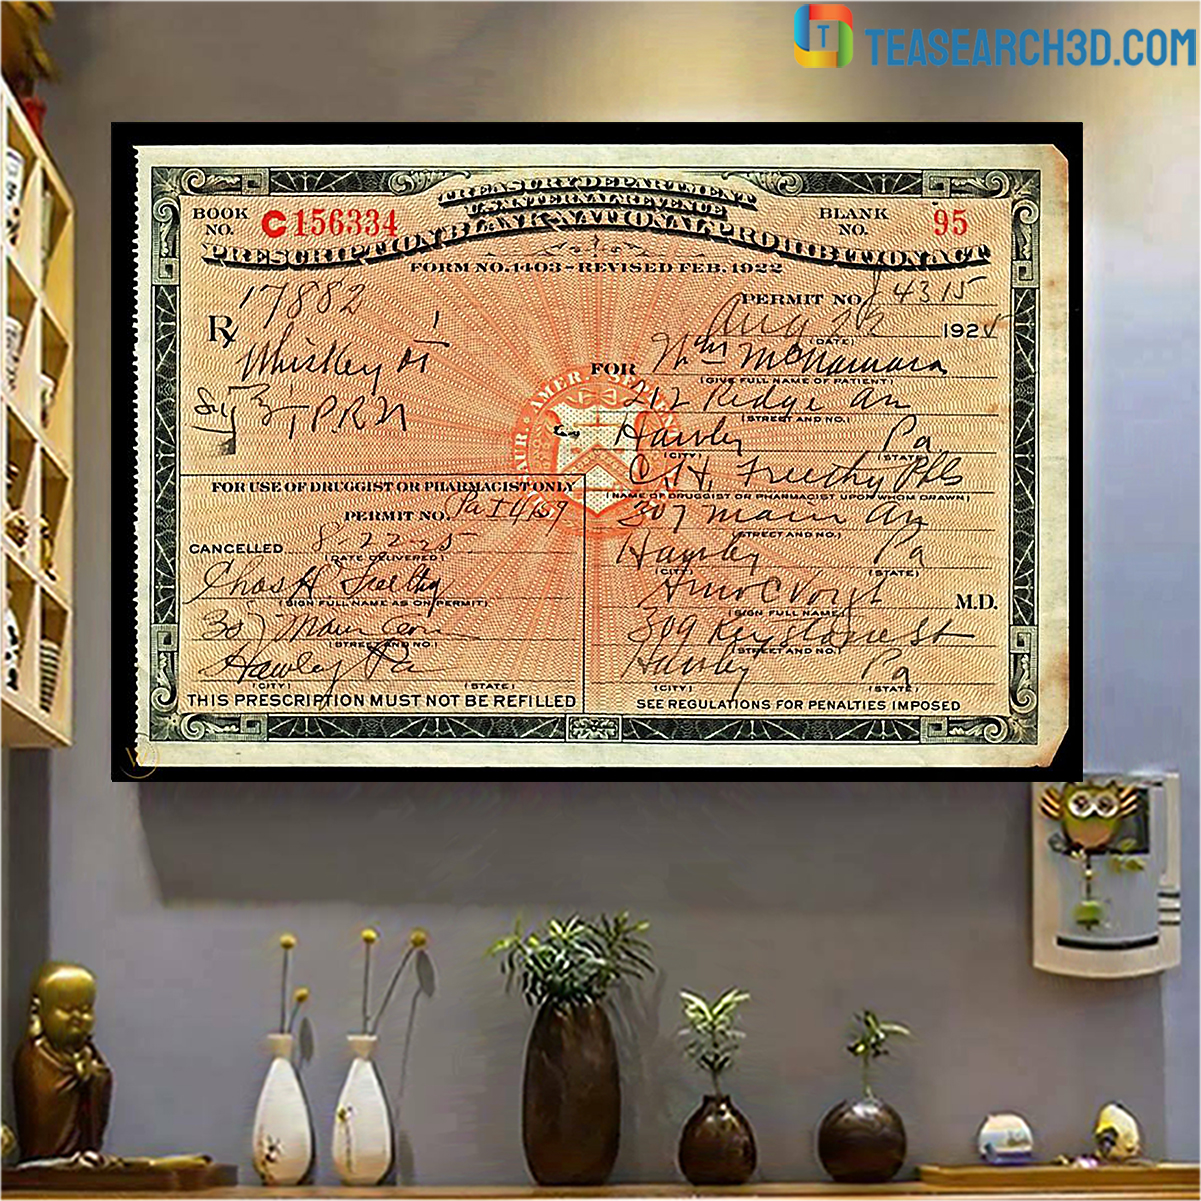 1924 prescription for whiskey during prohibition poster A4